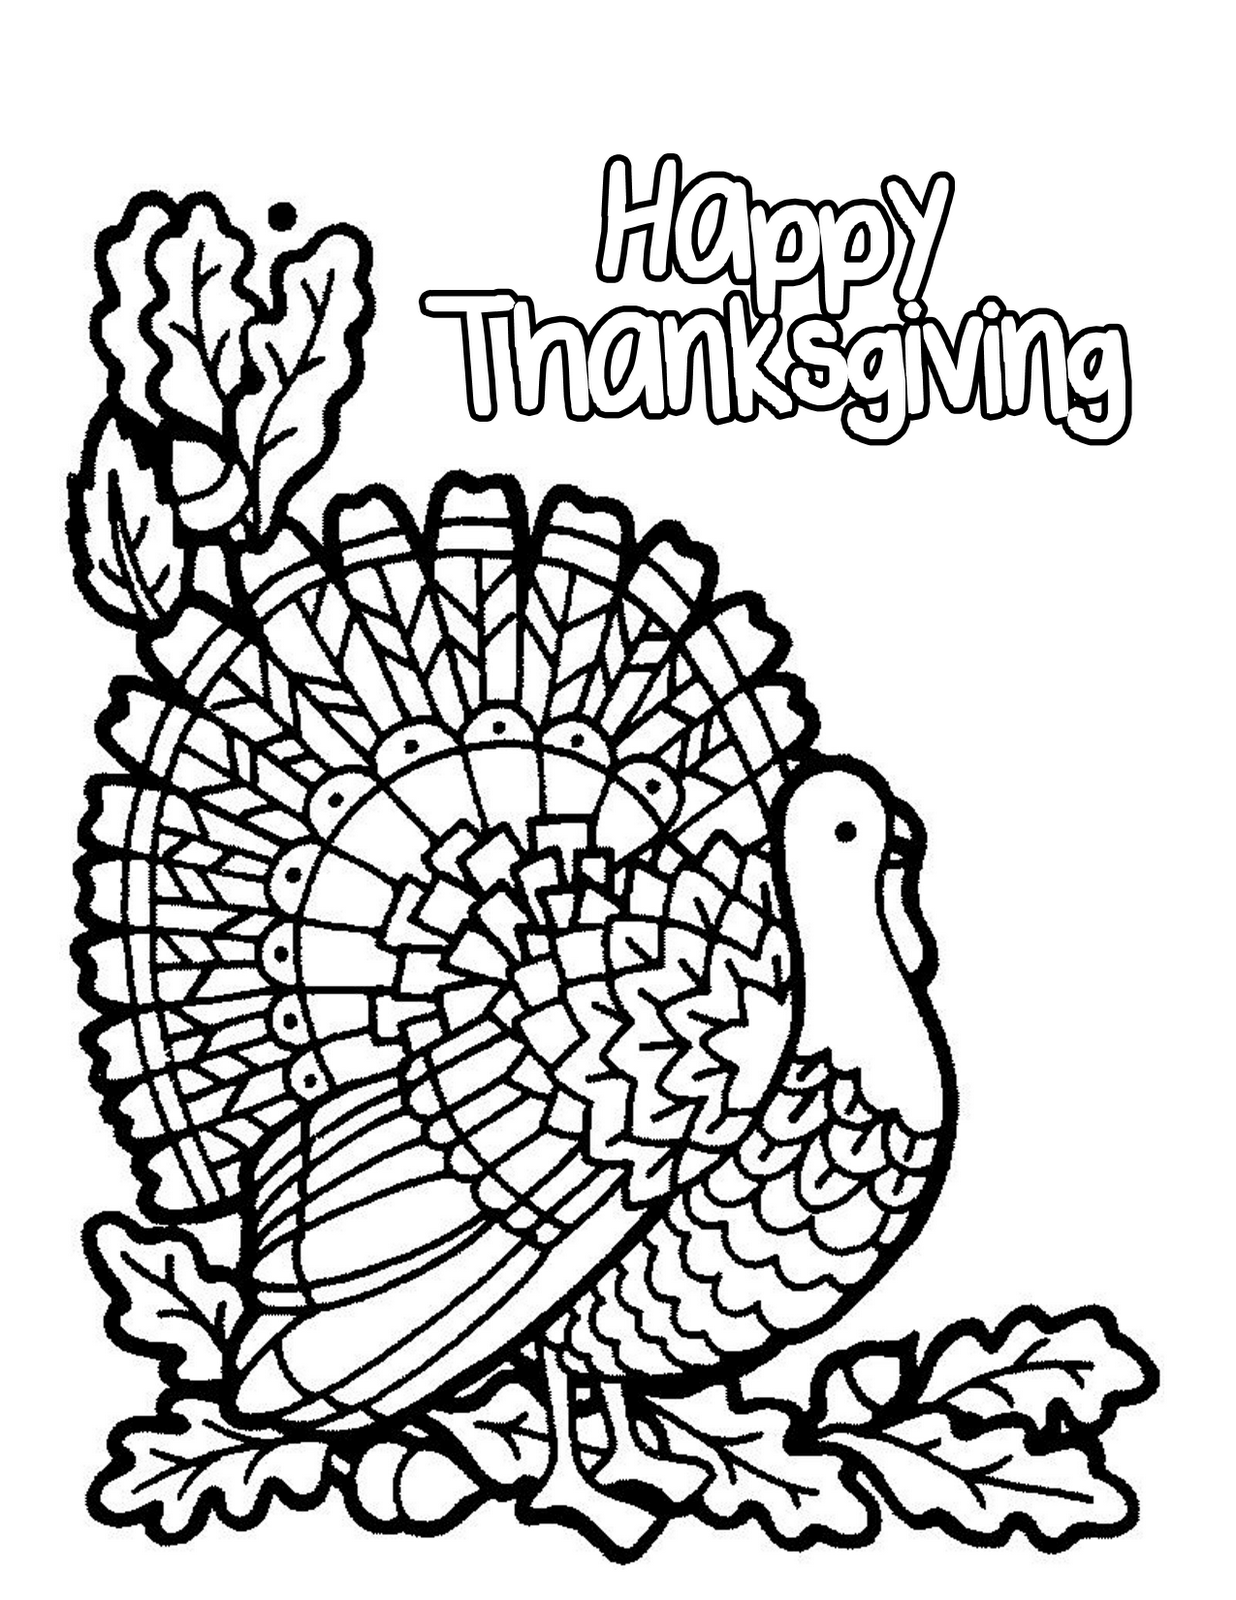 thanksgiving day coloring pages happy thanksgiving coloring pages to download and print coloring thanksgiving day pages